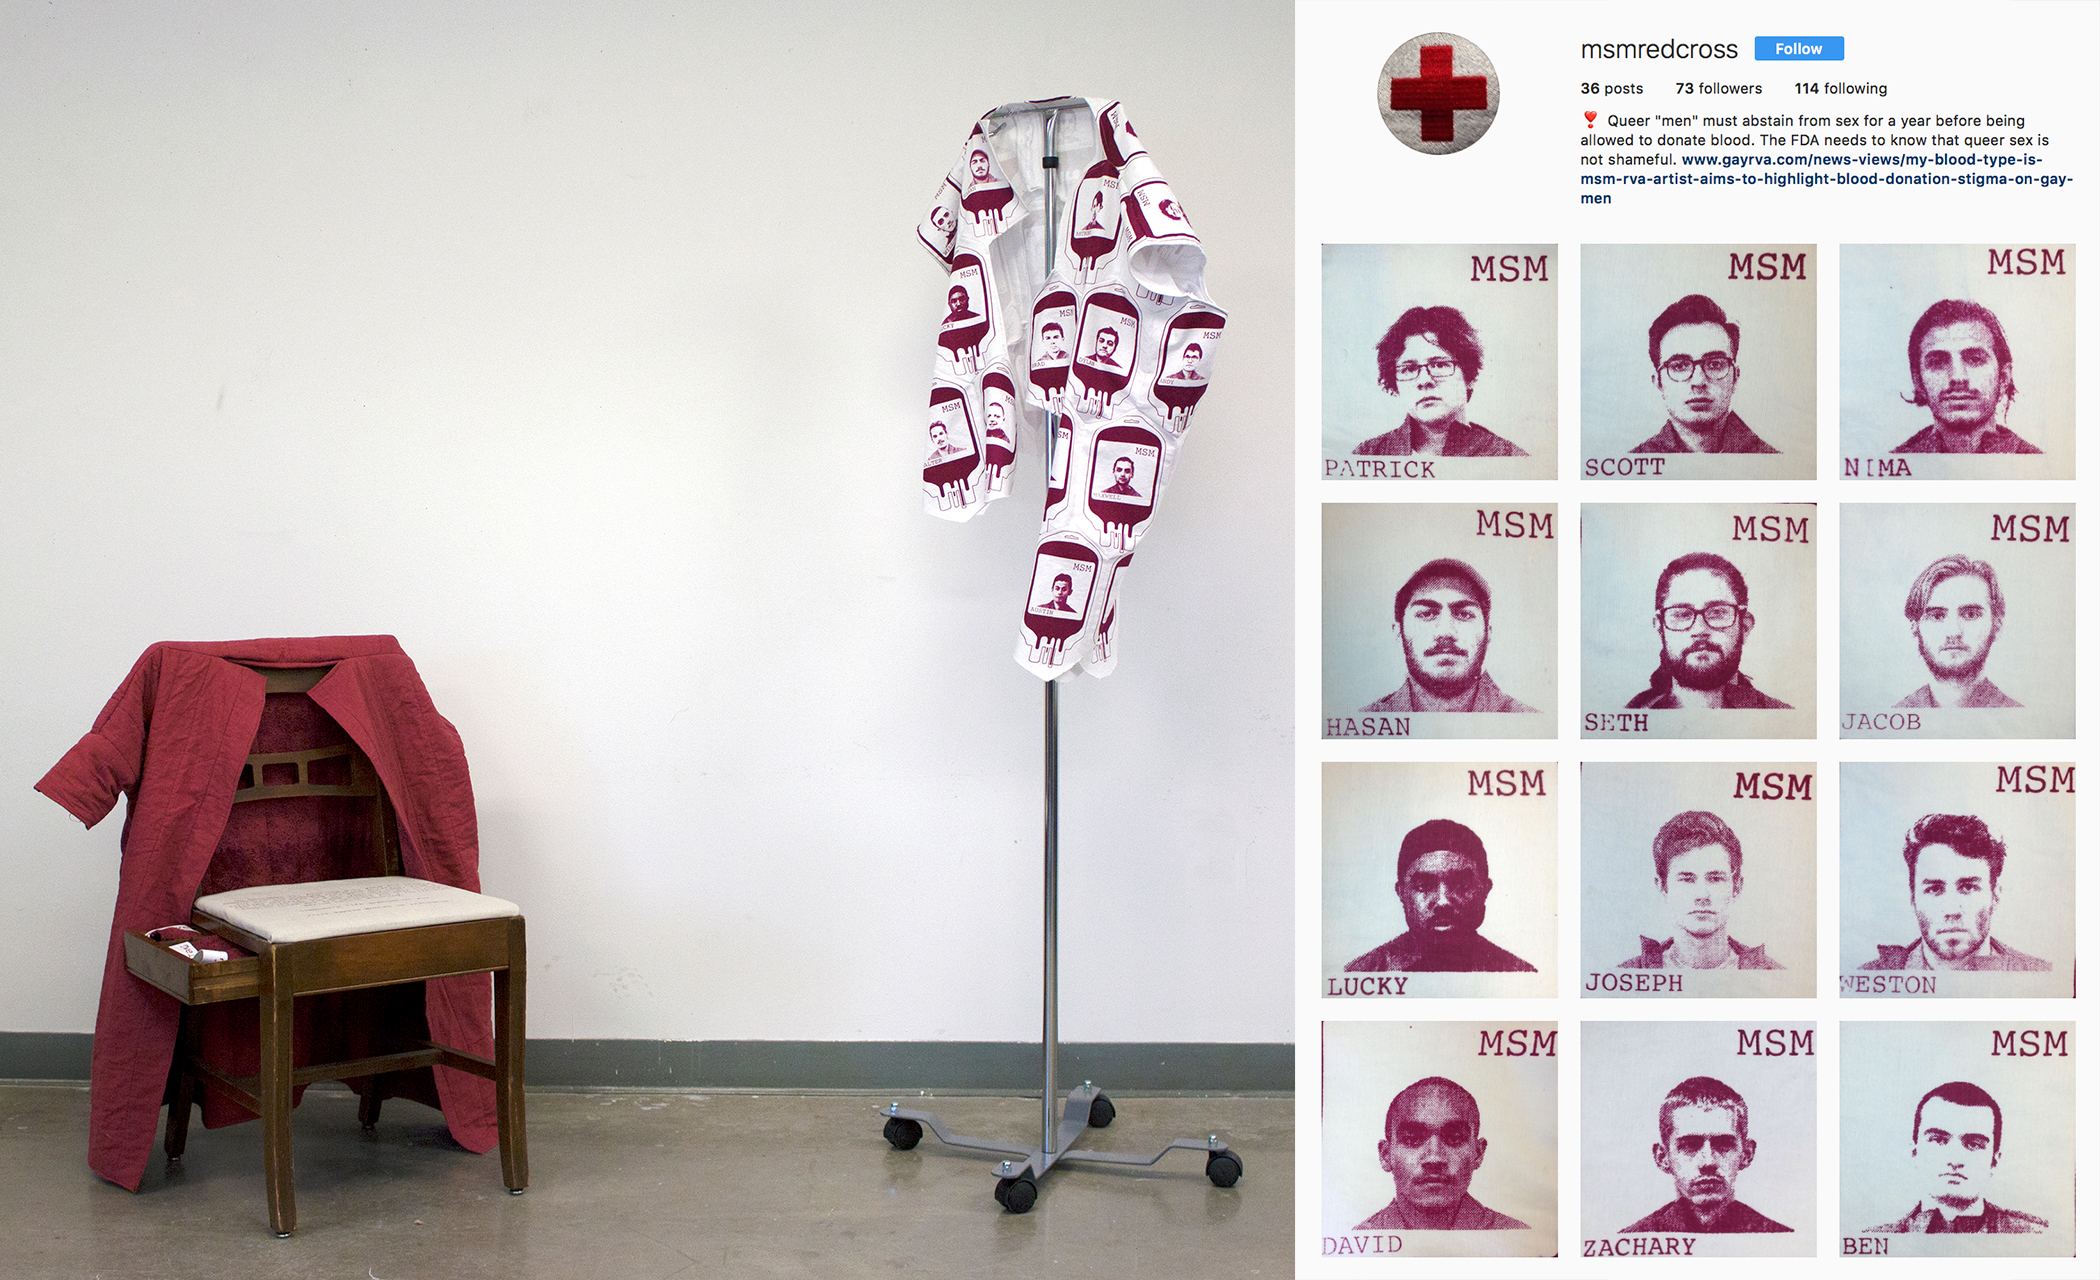 """Connor Shumaker Fabric Design II , 2016  Virginia Commonwealth University   Margin to Center /  Use pattern to highlight something that you see as marginal, overlooked, or underrepresented.  Connor addressed the issue of the Red Cross severely limiting the ability of """"men who have sex with men"""" (MSM) to donate blood. They photographed voluntarily identified MSM individuals; these portraits were posted to a dedicated Instagram feed and printed on blood bags that were pieced into a garment. As more participants are photographed, they are pieced into the coat."""